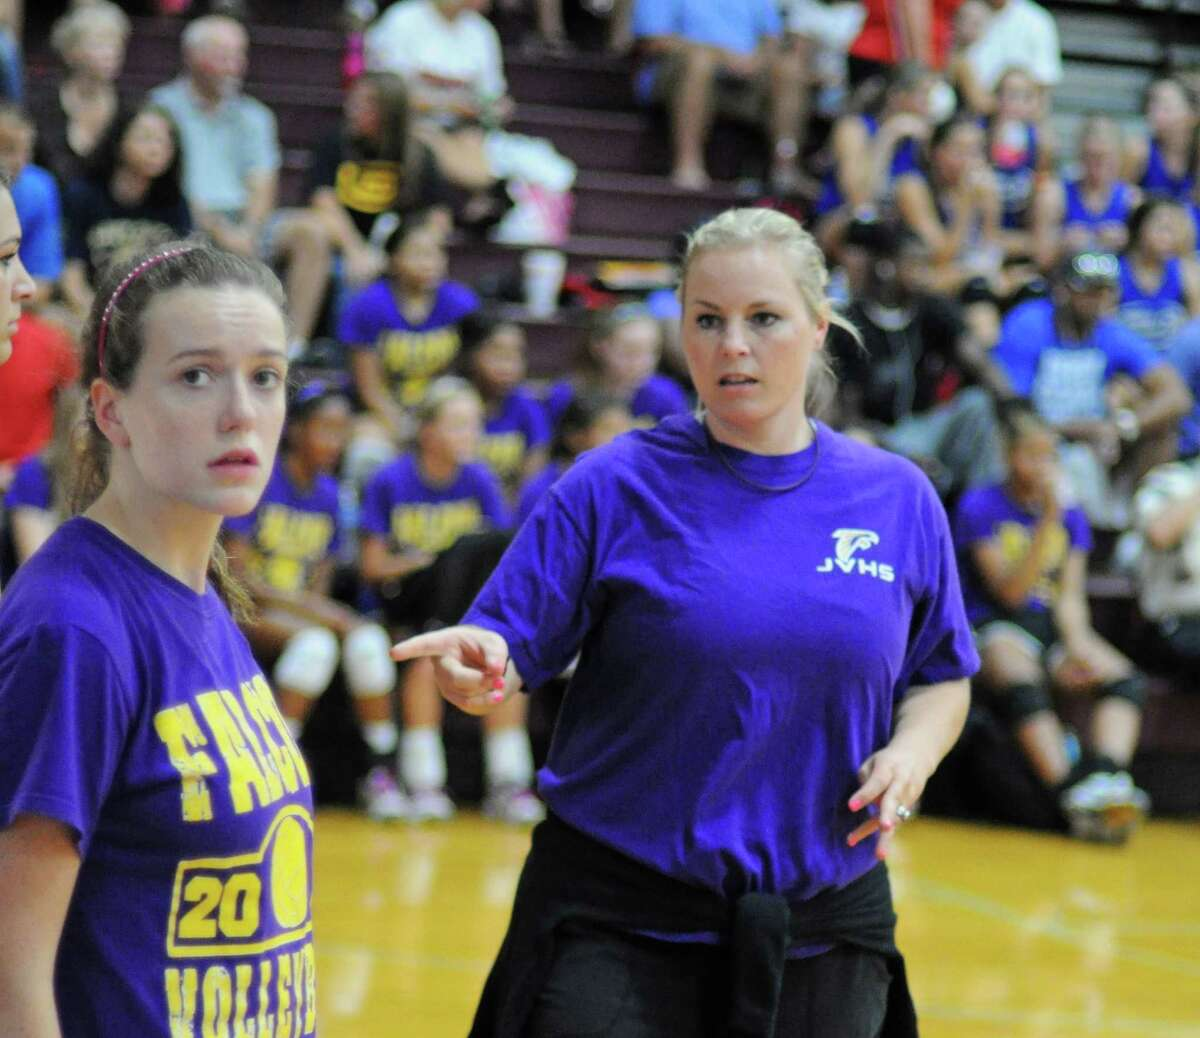 Jersey Village volleyball coach Carrie Schneider (right) during a scrimmage on 8-11-12 at Magnolia.